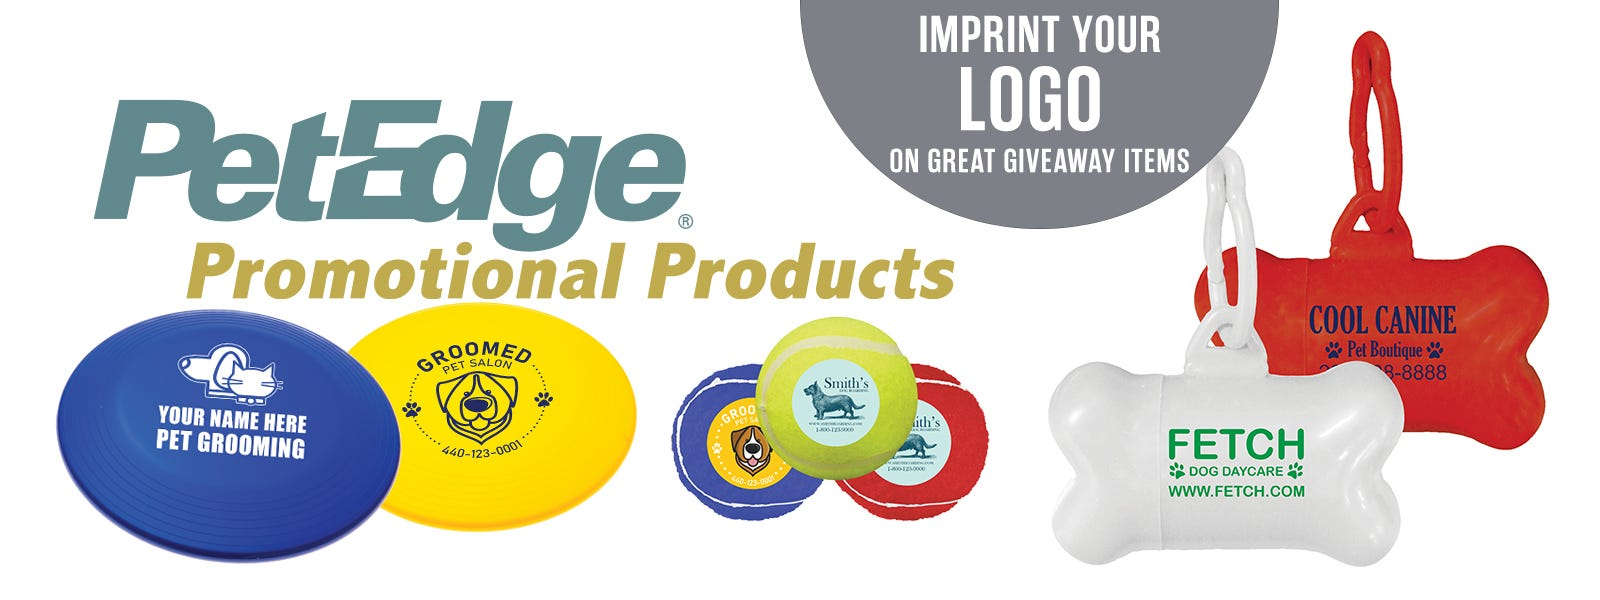 Imprint your logo on great giveaways